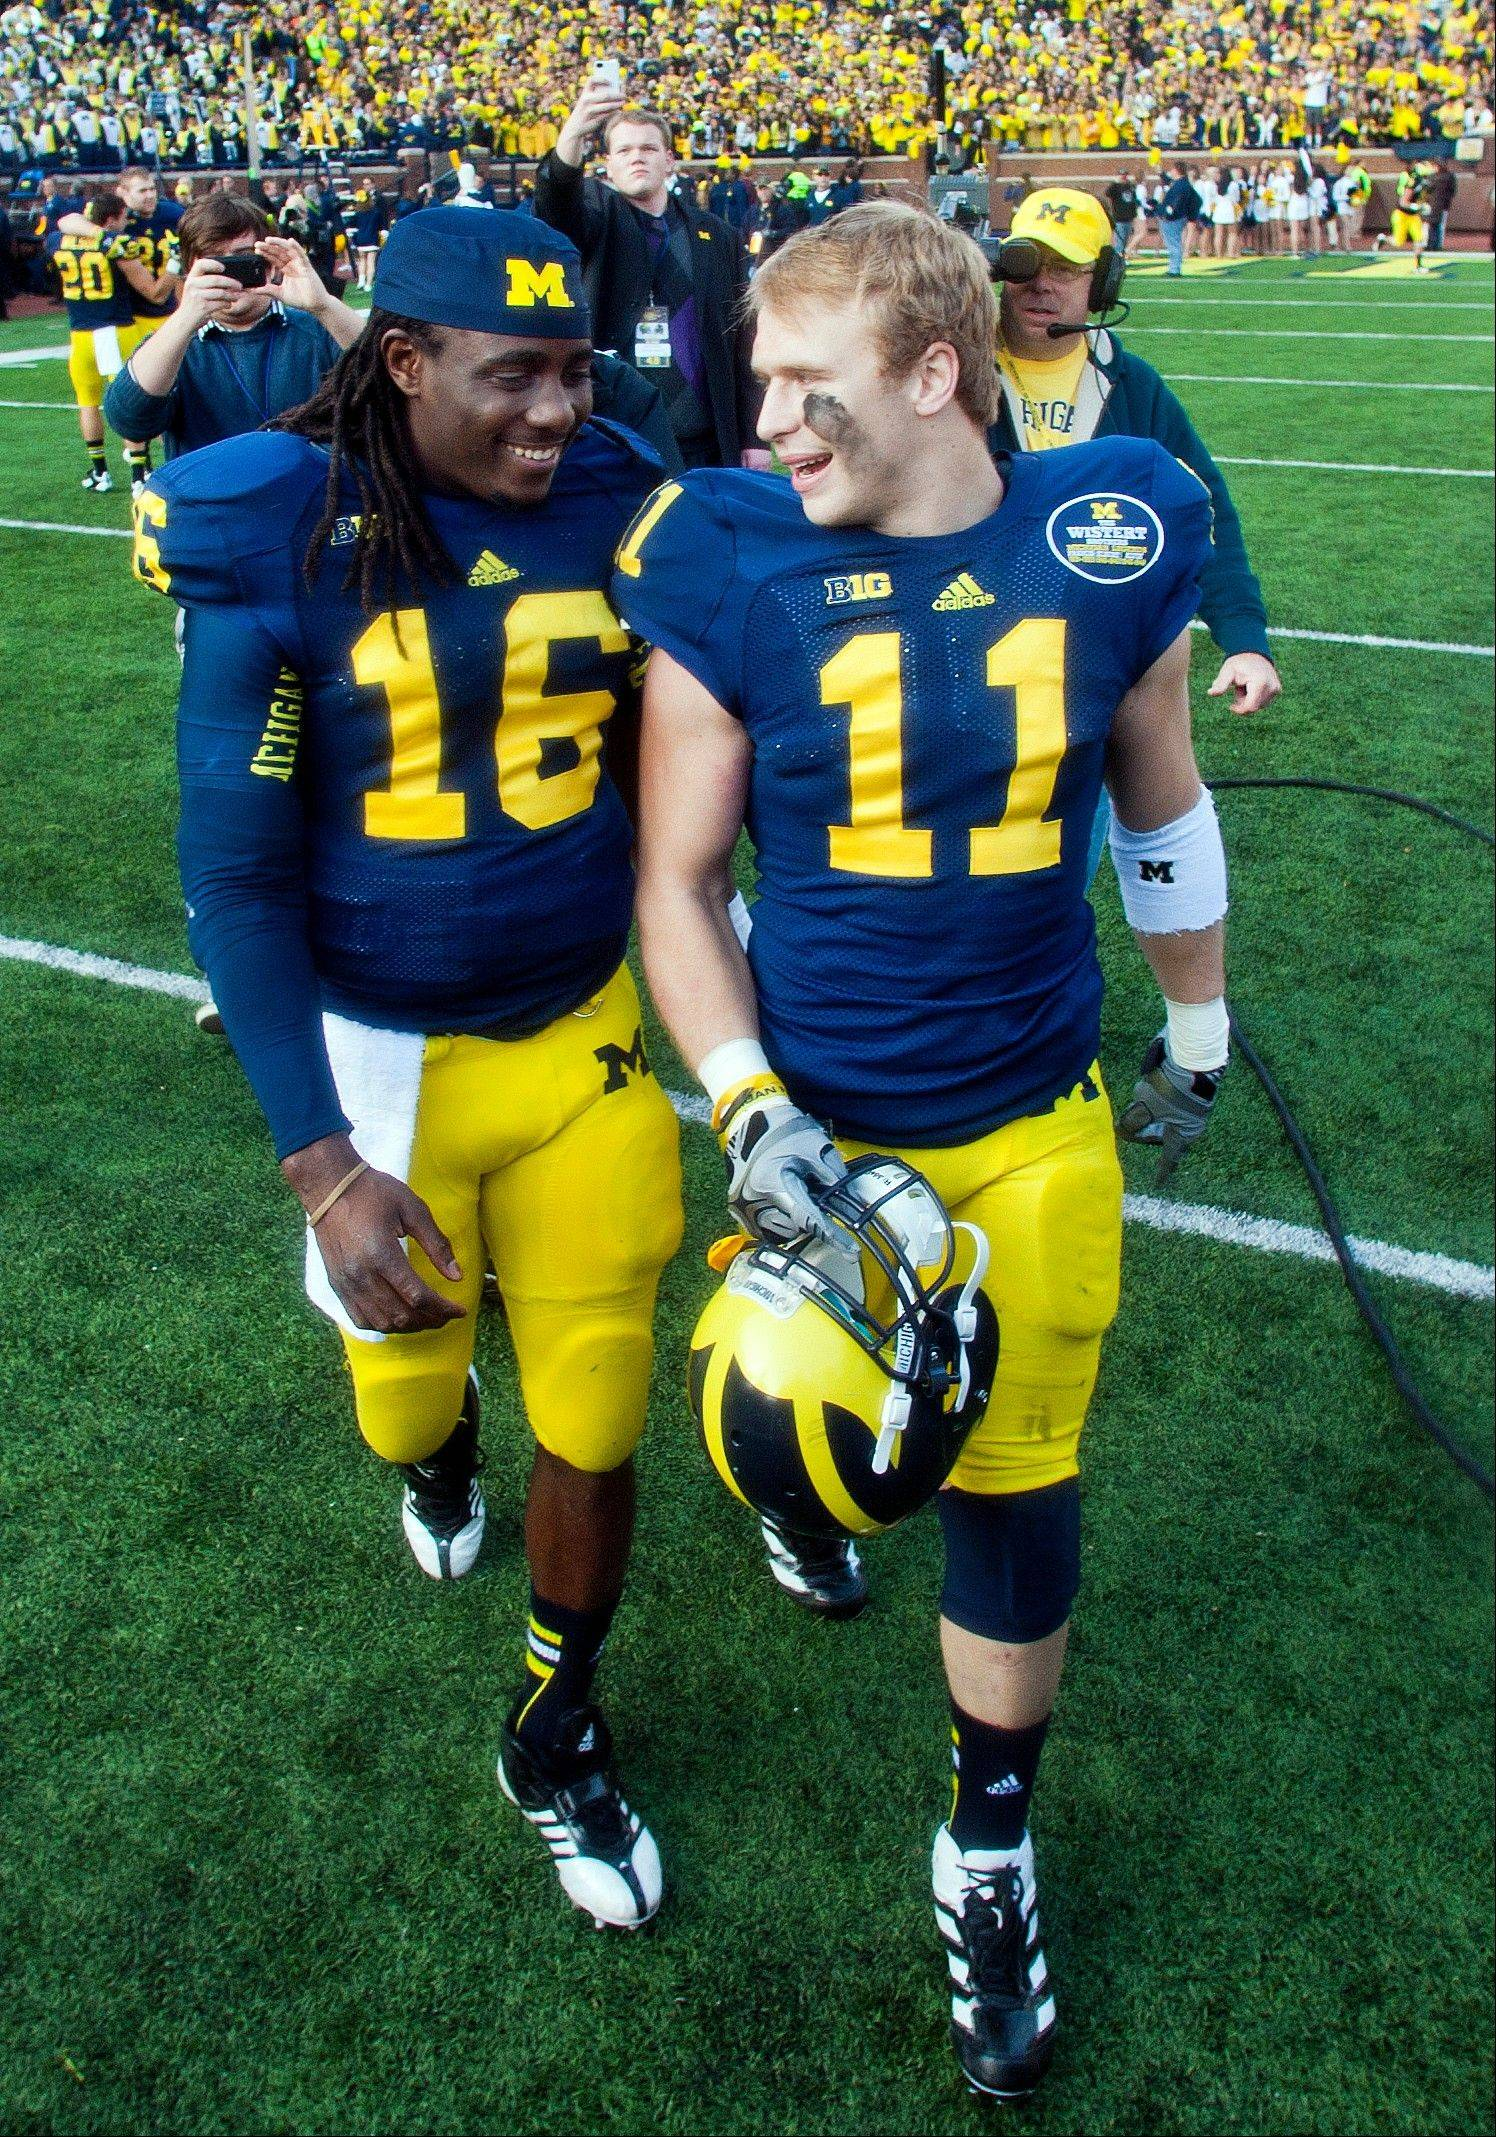 Michigan co-captains quarterback Denard Robinson (16) and safety Jordan Kovacs (11) walk off the field after playing their final home game in an NCAA college football game against Iowa, Saturday, Nov. 17, 2012, in Ann Arbor, Mich. Michigan won 42-17.